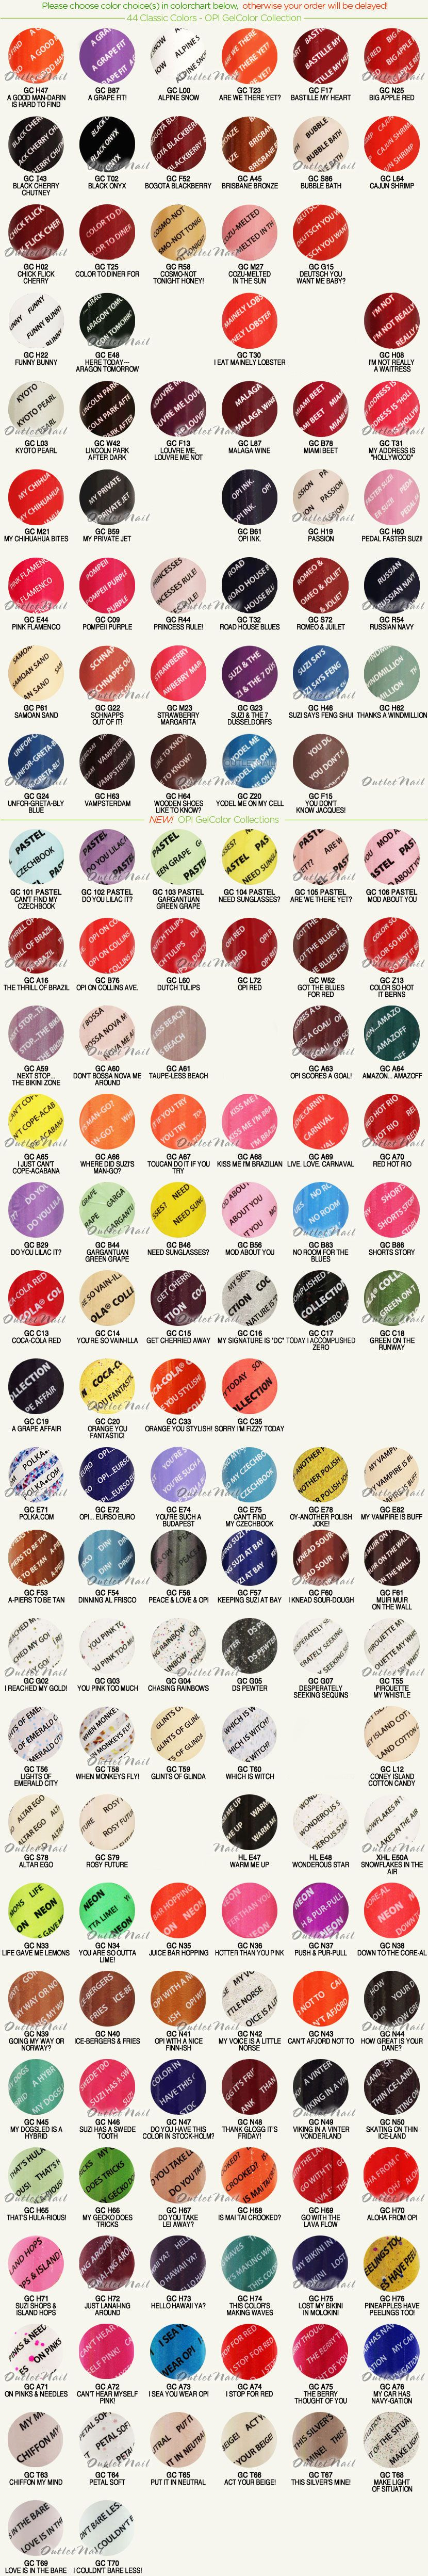 outletnail items - Get great deals on OPI GelColor Color Chart items ...